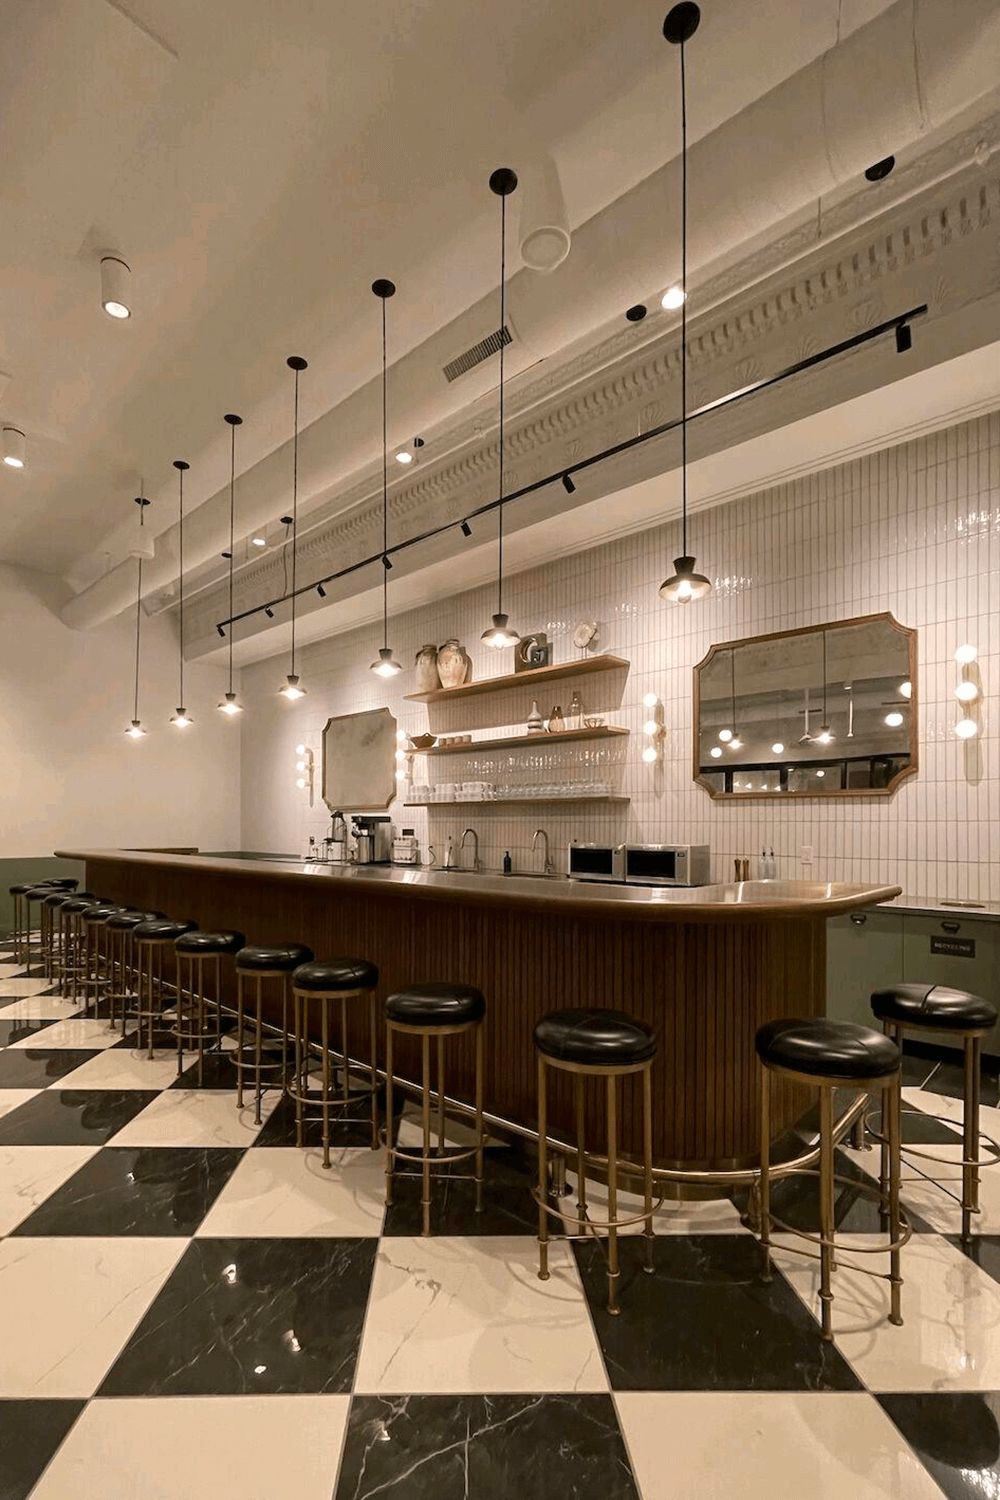 https://tableplacechairs.com/wp-content/uploads/2021/05/MINDSPACE-PHILADELPHIA-for-web-4.png